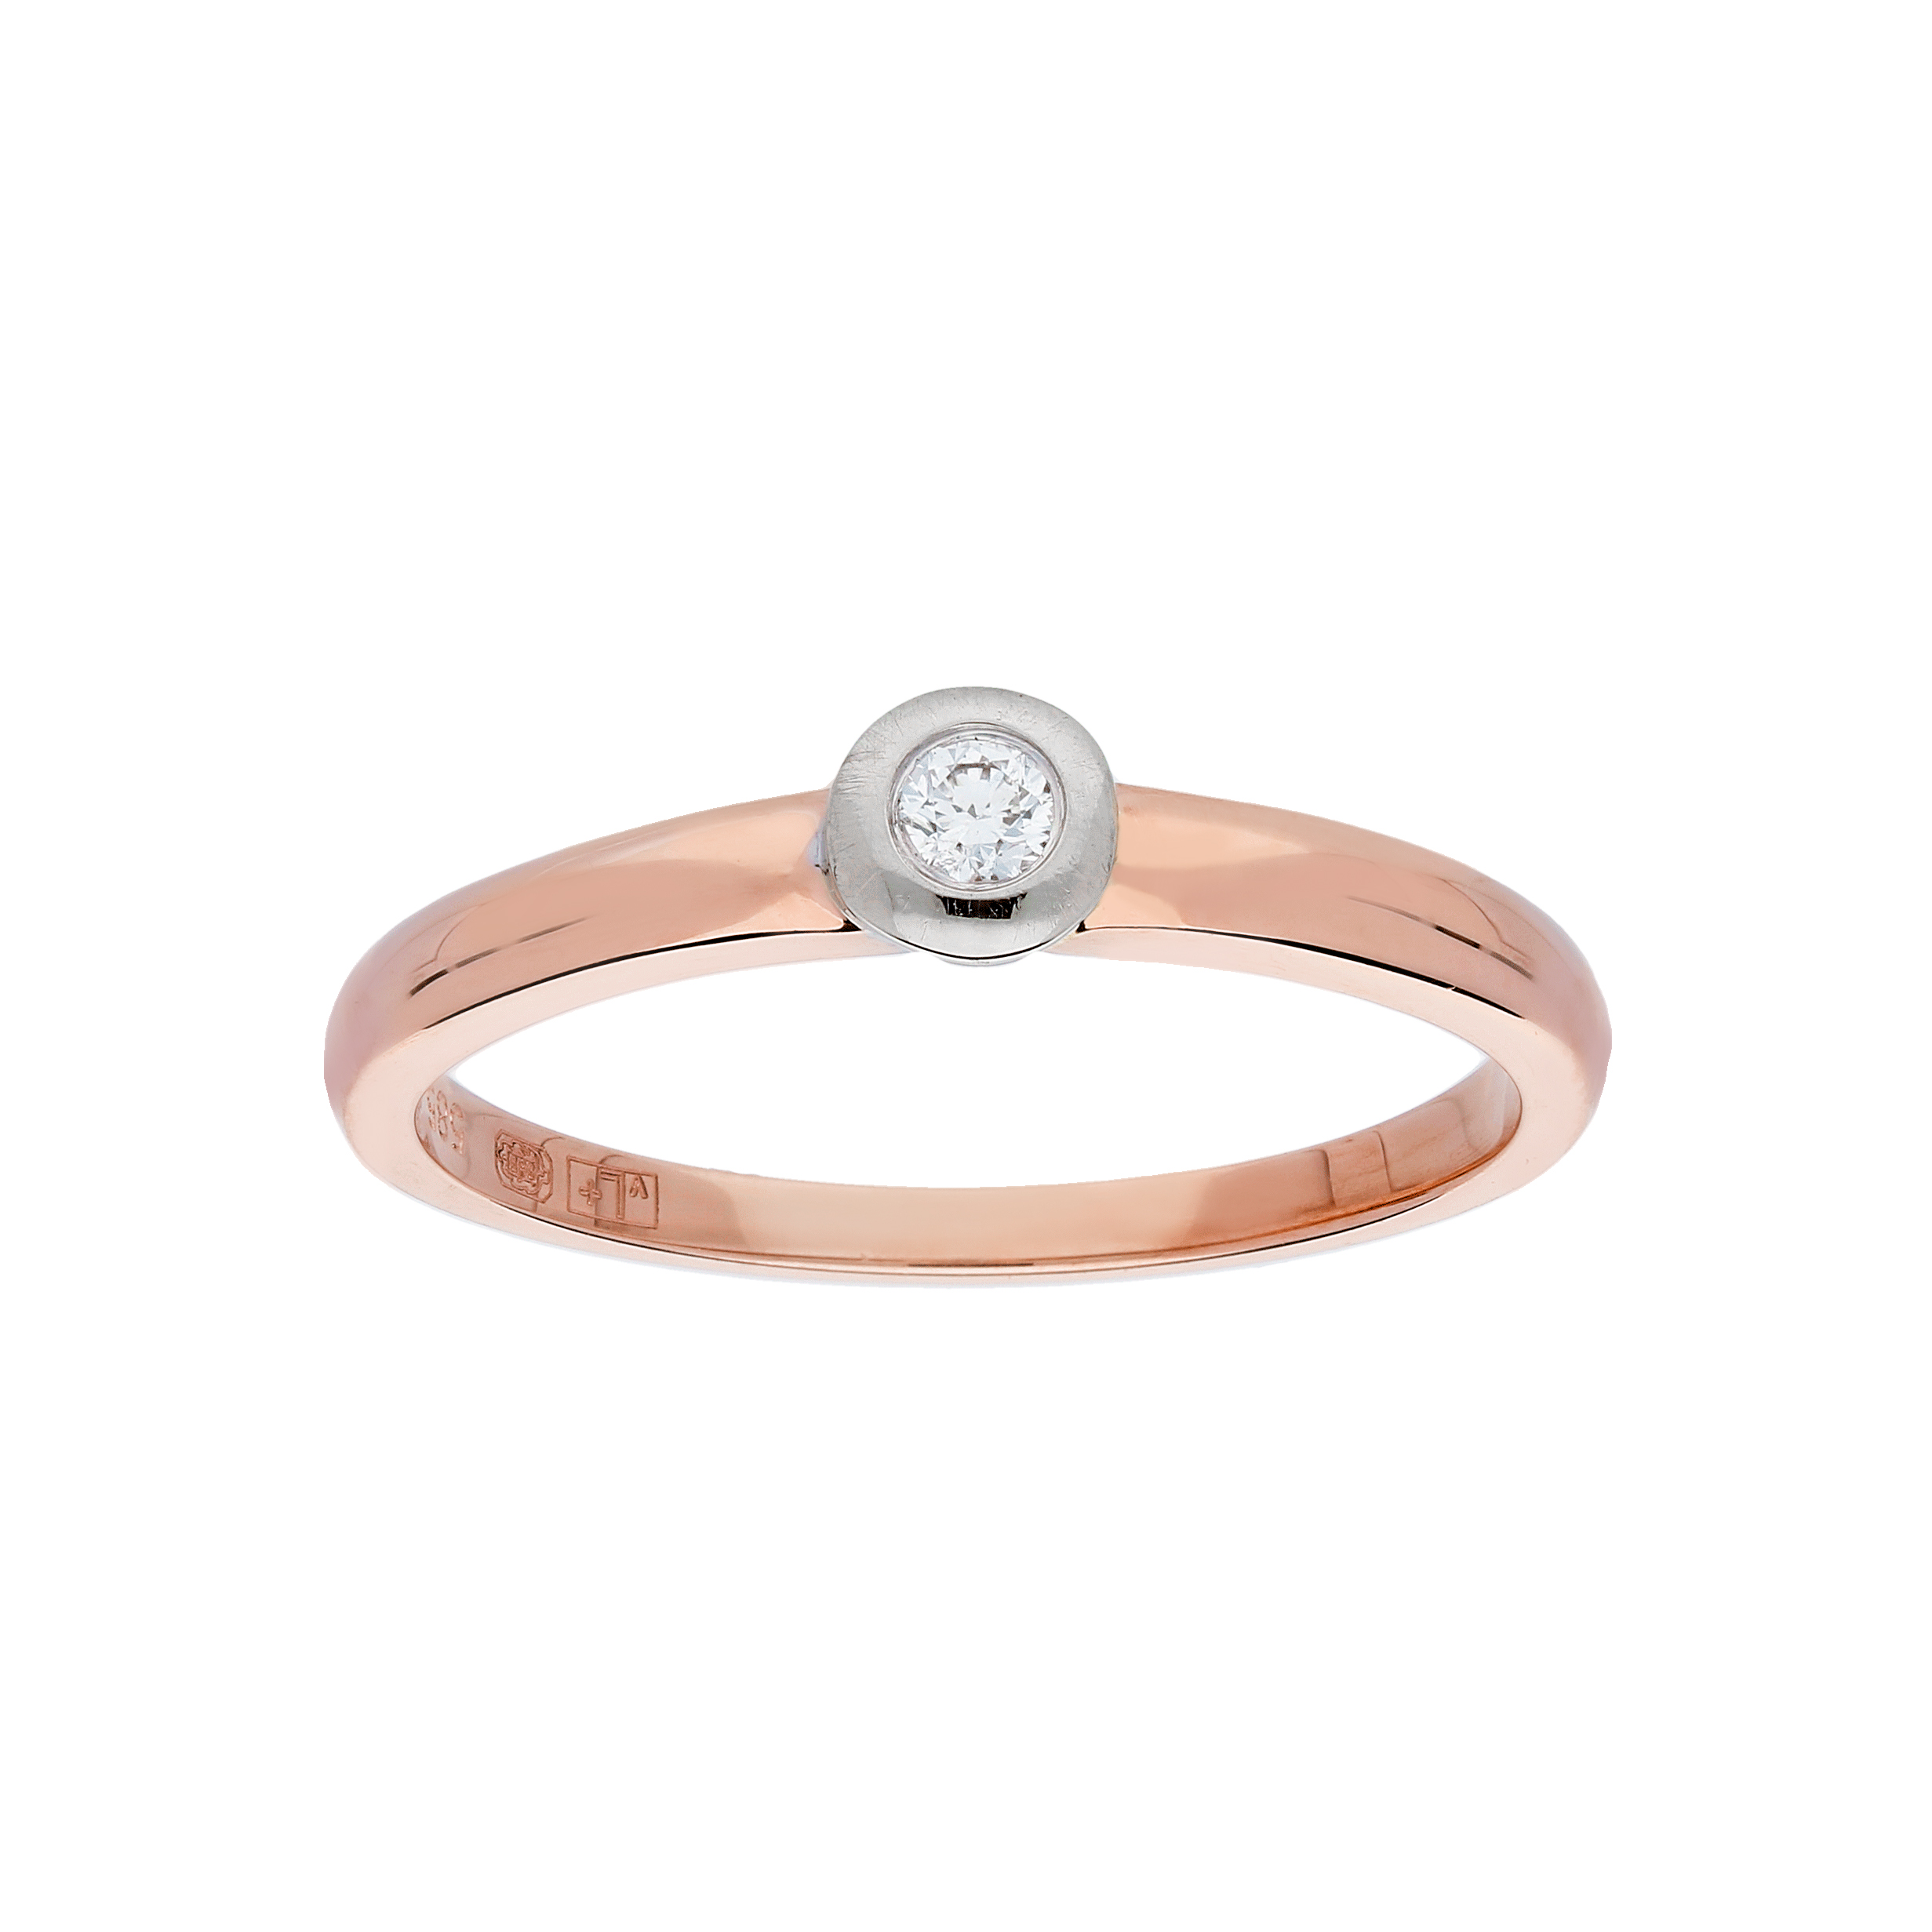 Glow Gouden Ring Bicolor Mat Glanzend Diamant 1 0.05ct G si 214.5208.58